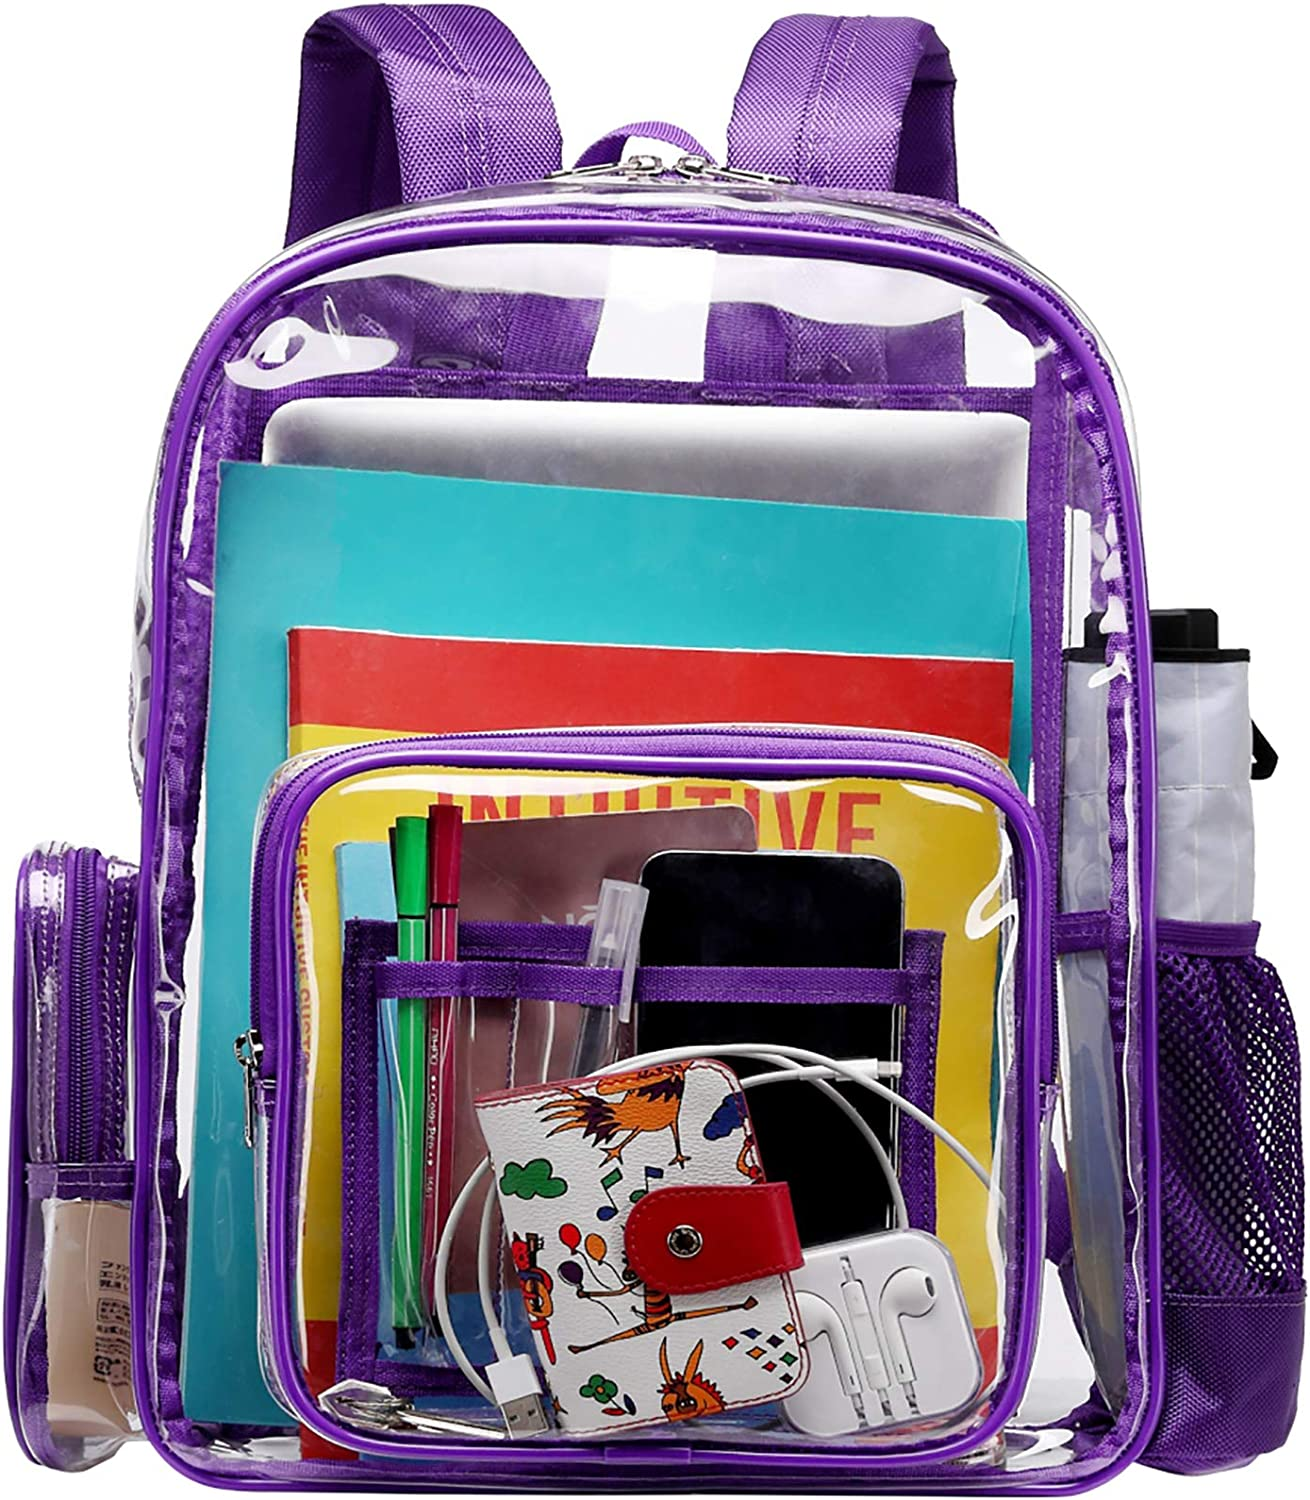 Heavy Duty Clear Backpack, Packism Large Clear Backpack with Laptop Compartment Waterproof Transparent Backpack with Reinforced Straps Clear Plastic Backpack for School, Work, Security, Purple